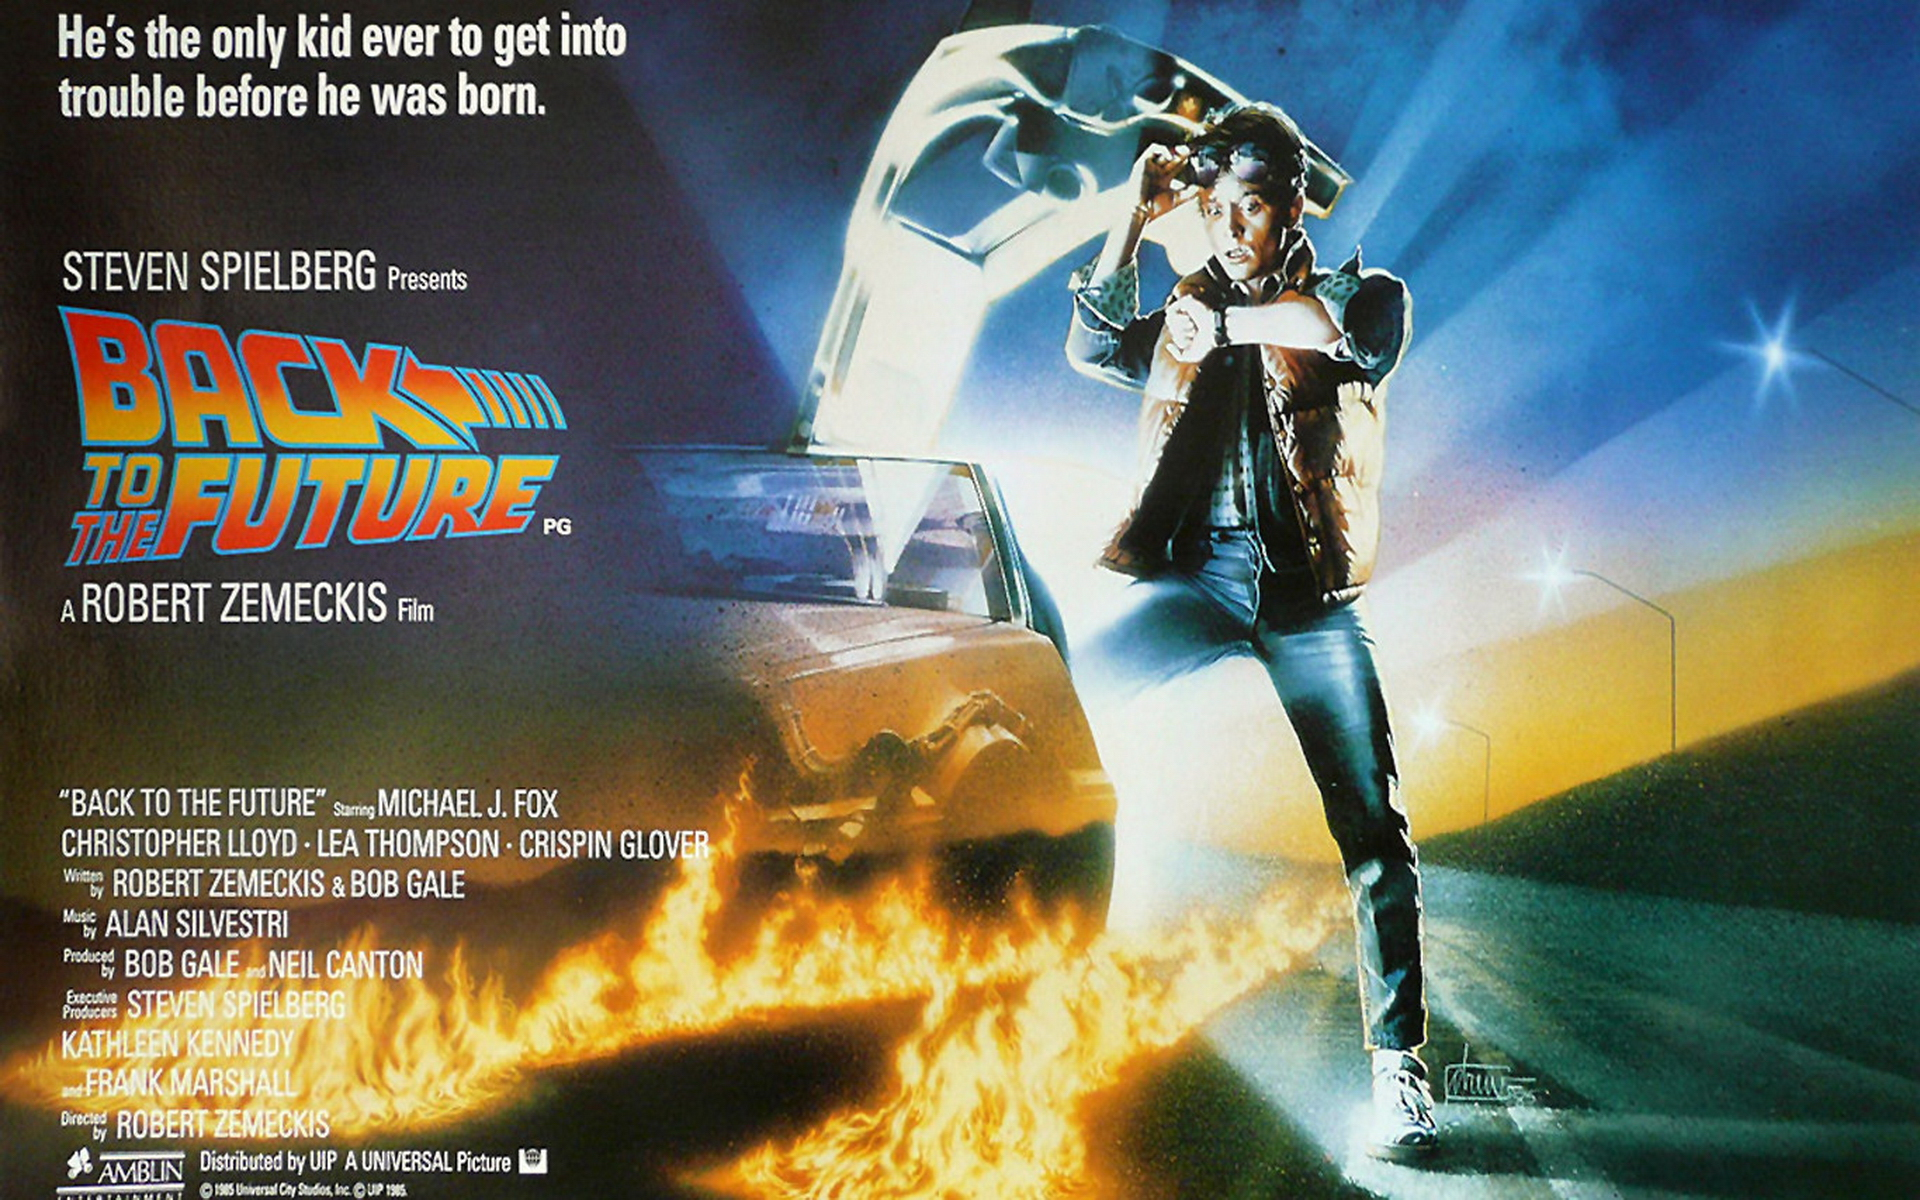 back to the future wallpaper hd Car Pictures 1920x1200